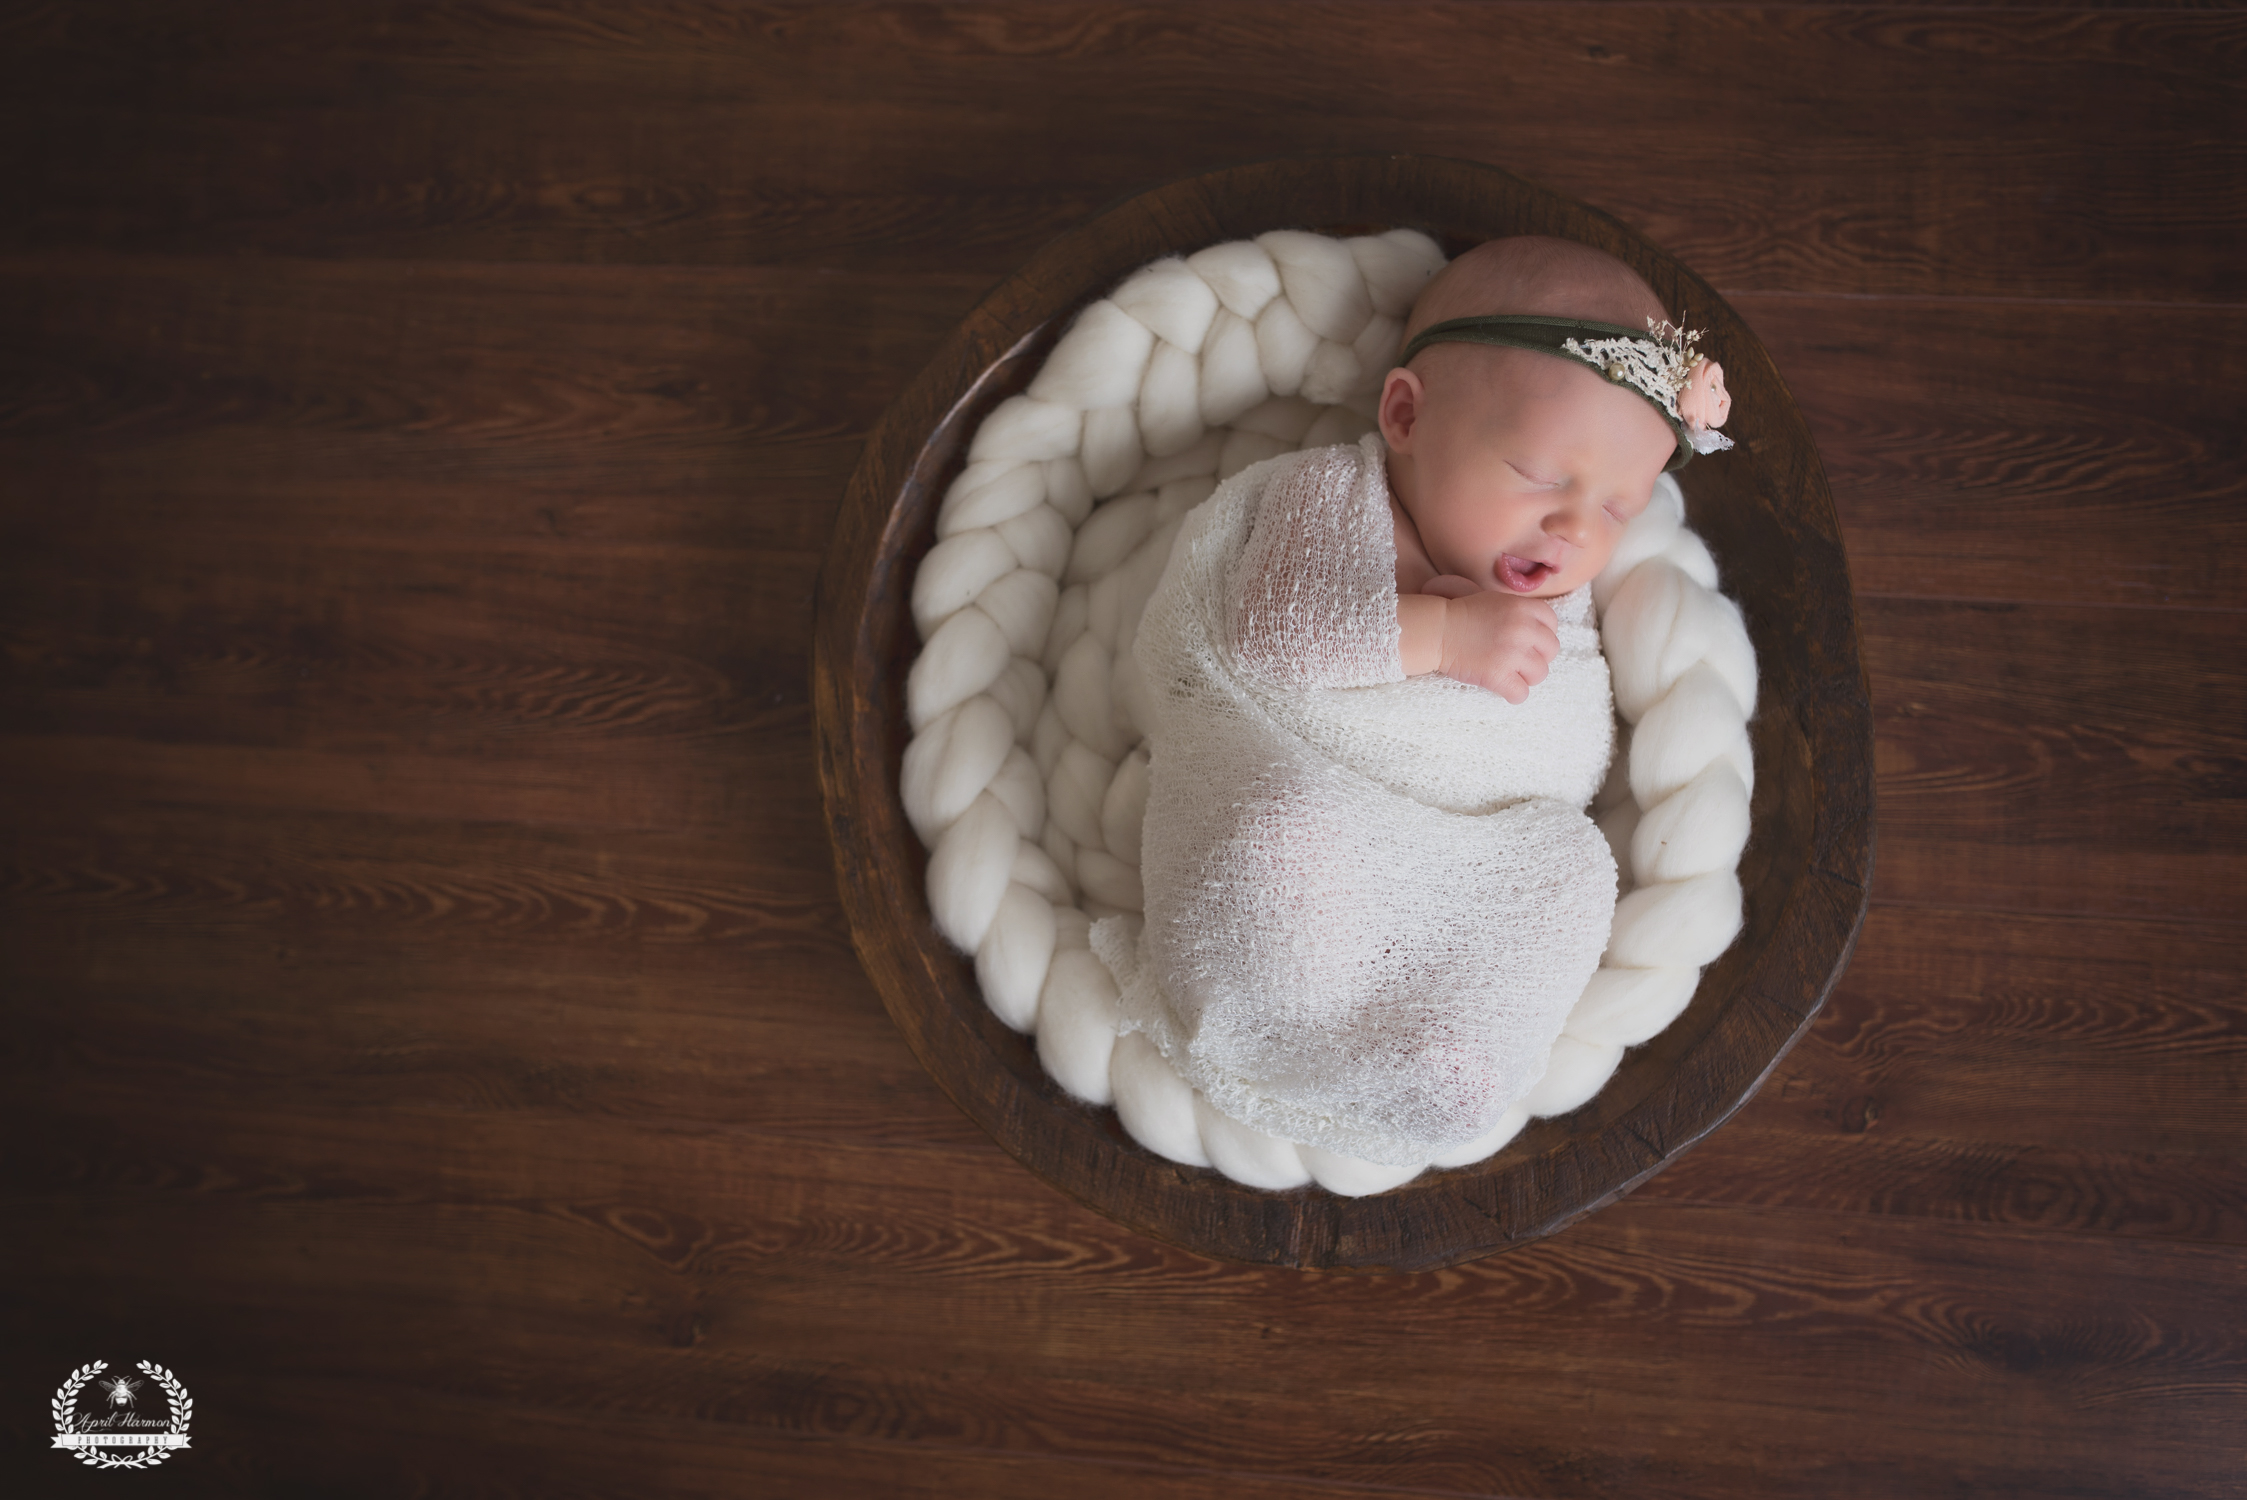 southwest-kansas-newborn-photography2.jpg